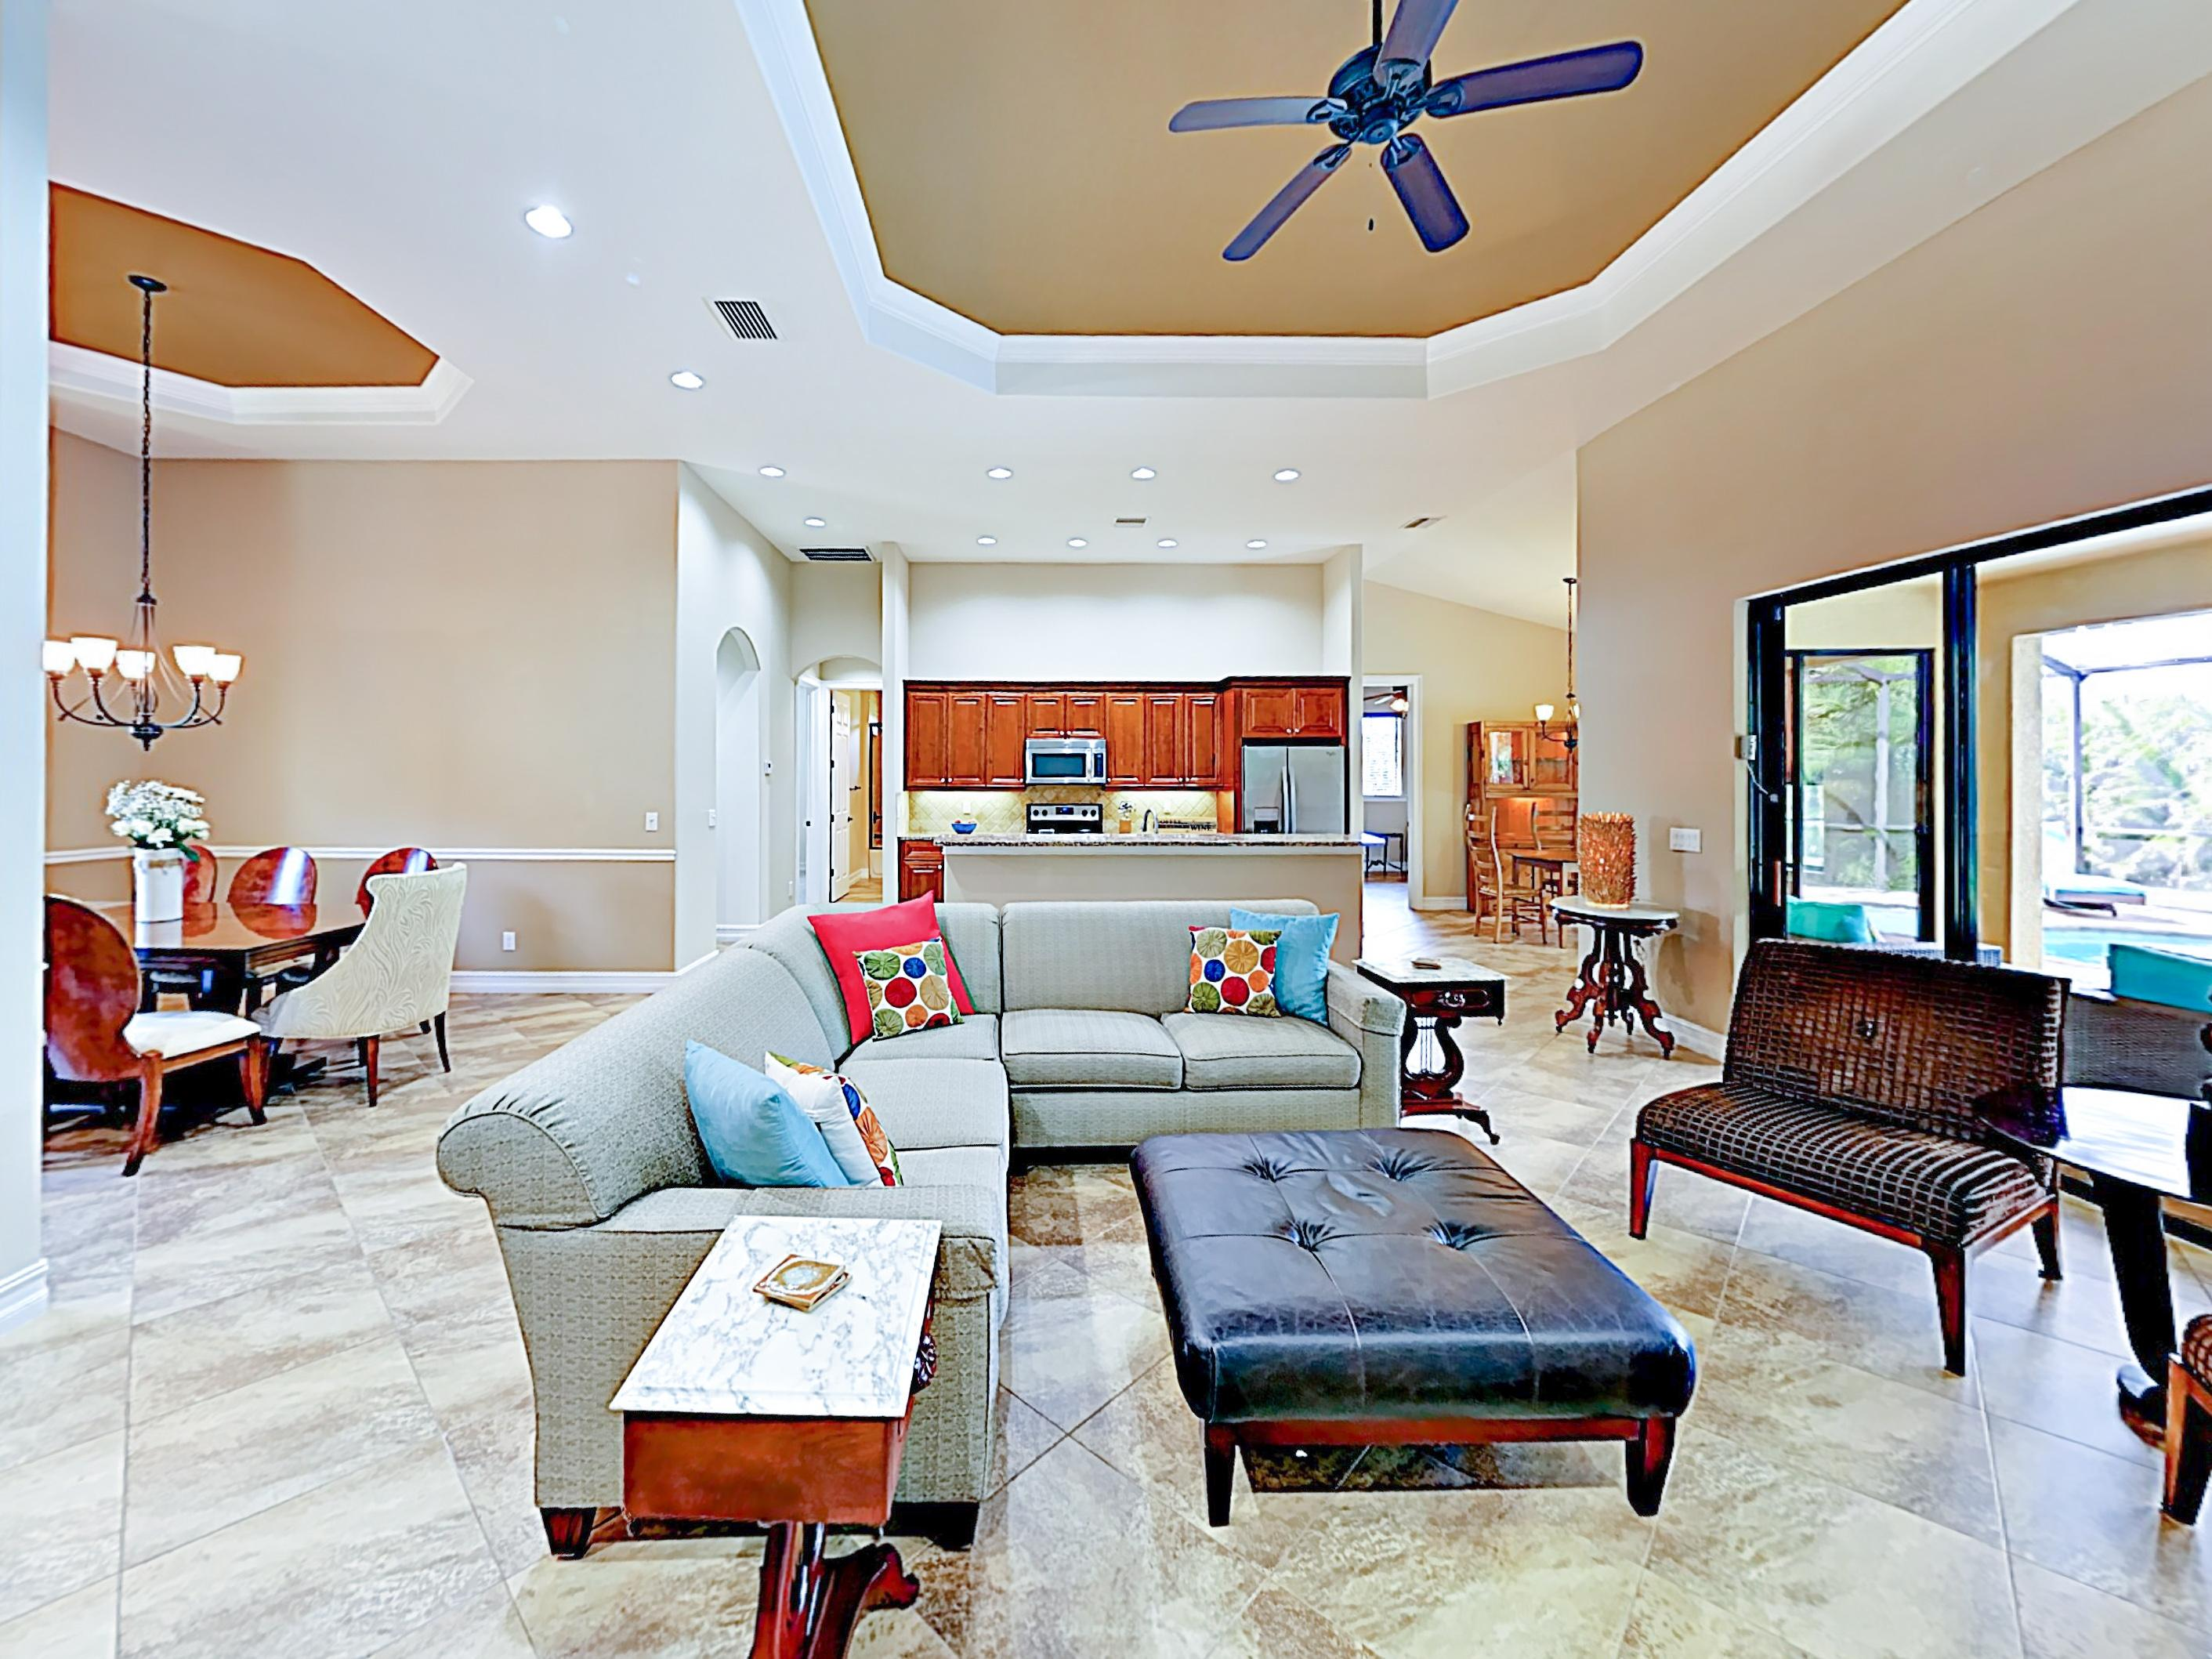 After a day in the sun, relax in the open living area, furnished with a plush sectional, ottoman, and 2 chairs.